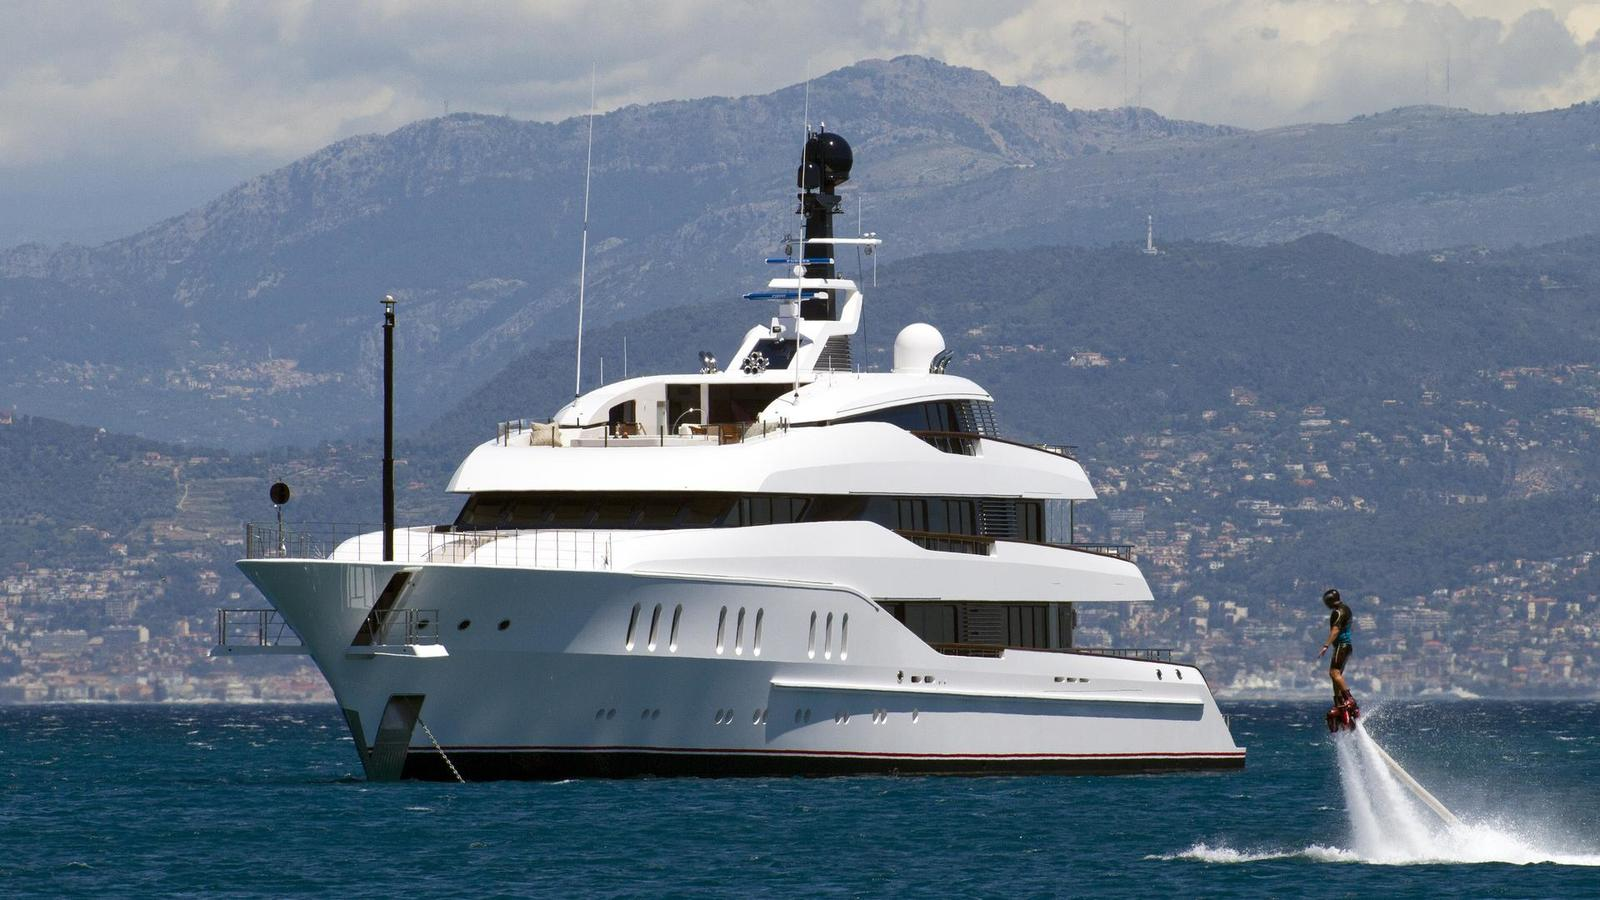 R8Df1xueQWep46h9sIMe_Vanish super yacht Feadship 2016 66 metre Flyboard-1600x900